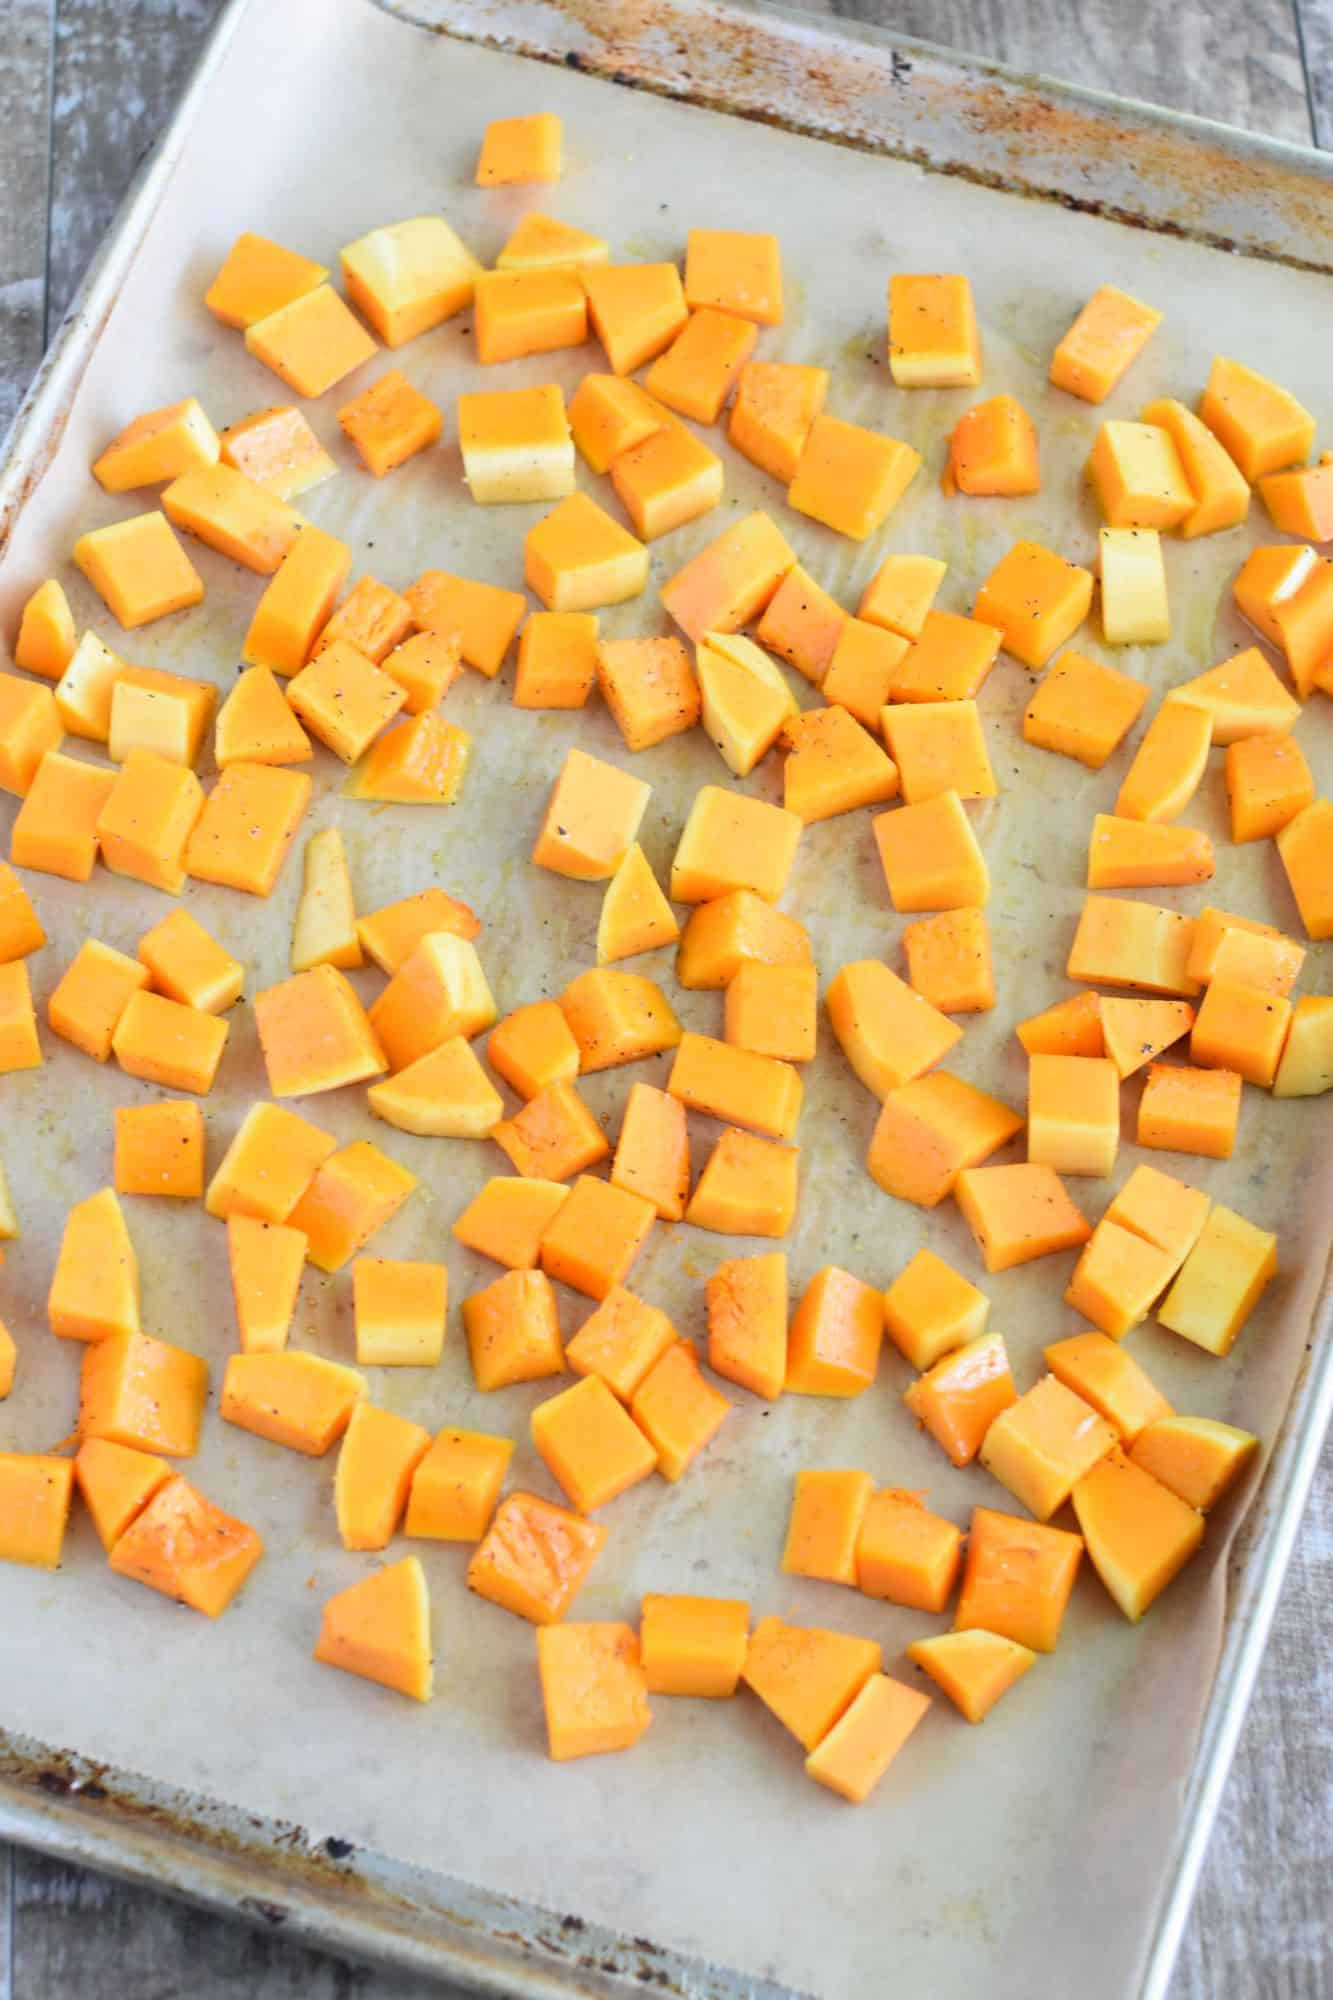 butternut squash cubes with olive oil and seasoned with salt and pepper on baking sheet